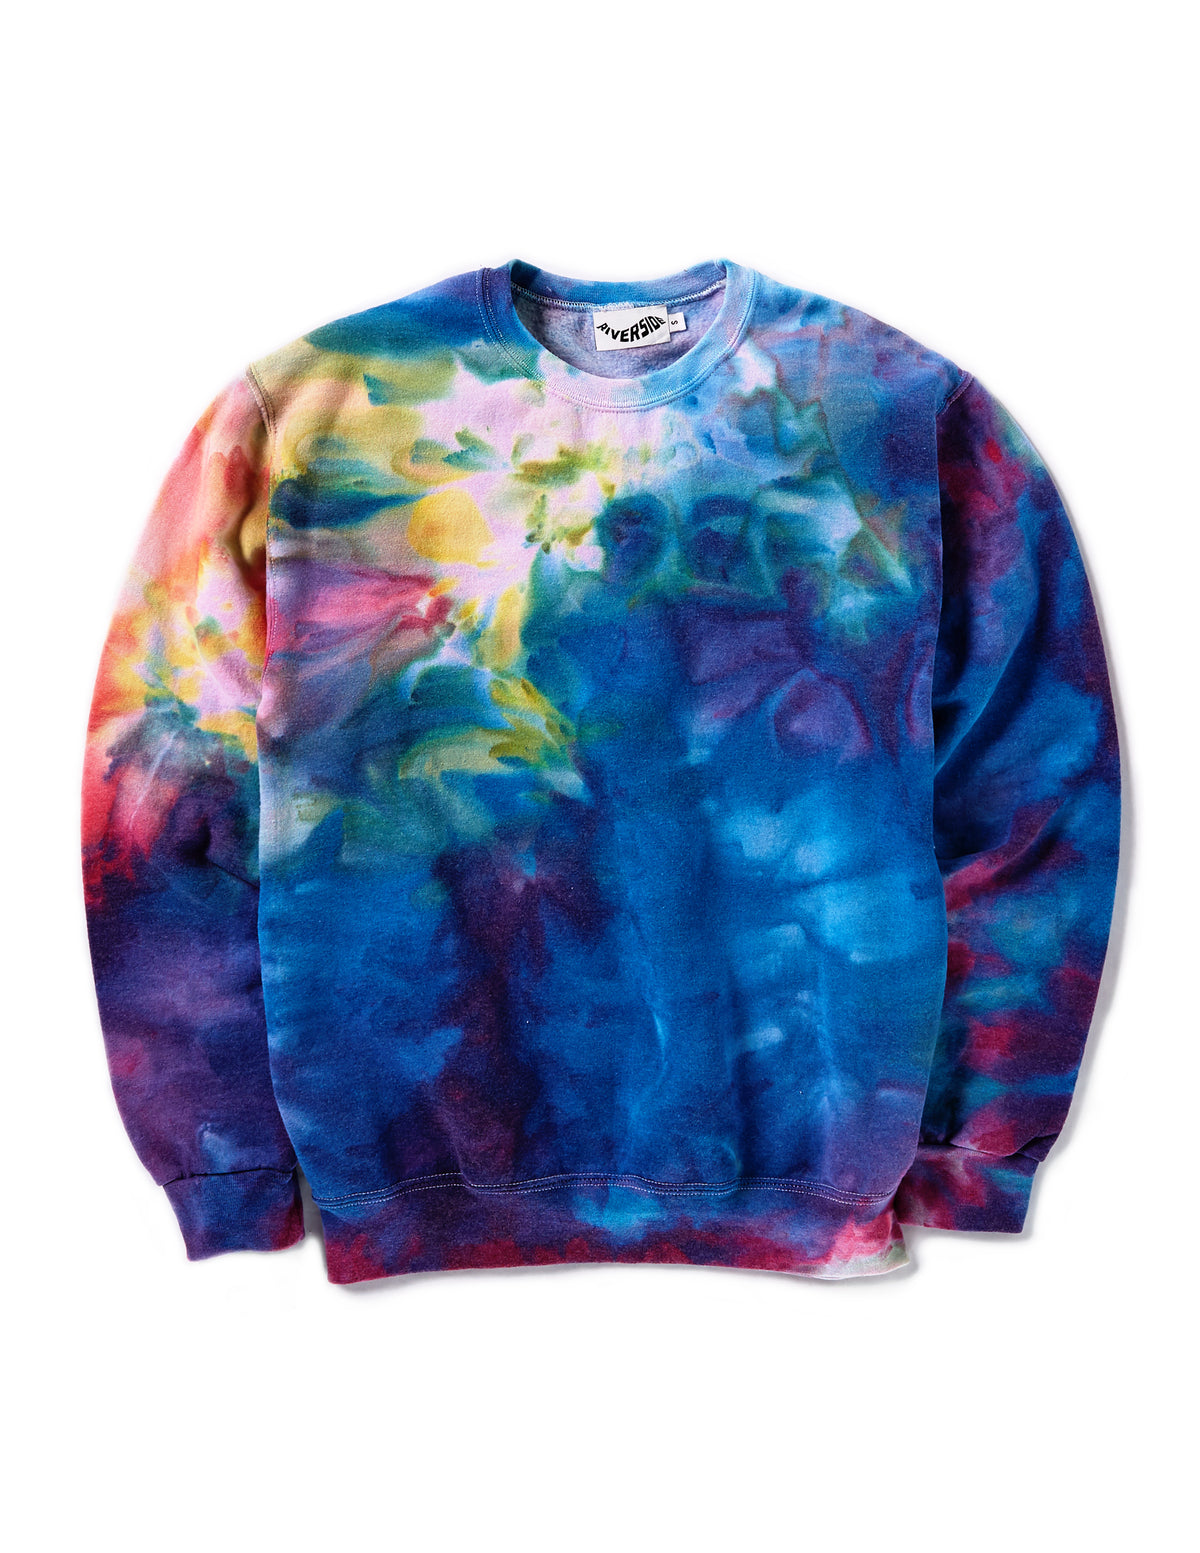 SWEATSHIRTS in Rainbow - riverside tool & dye